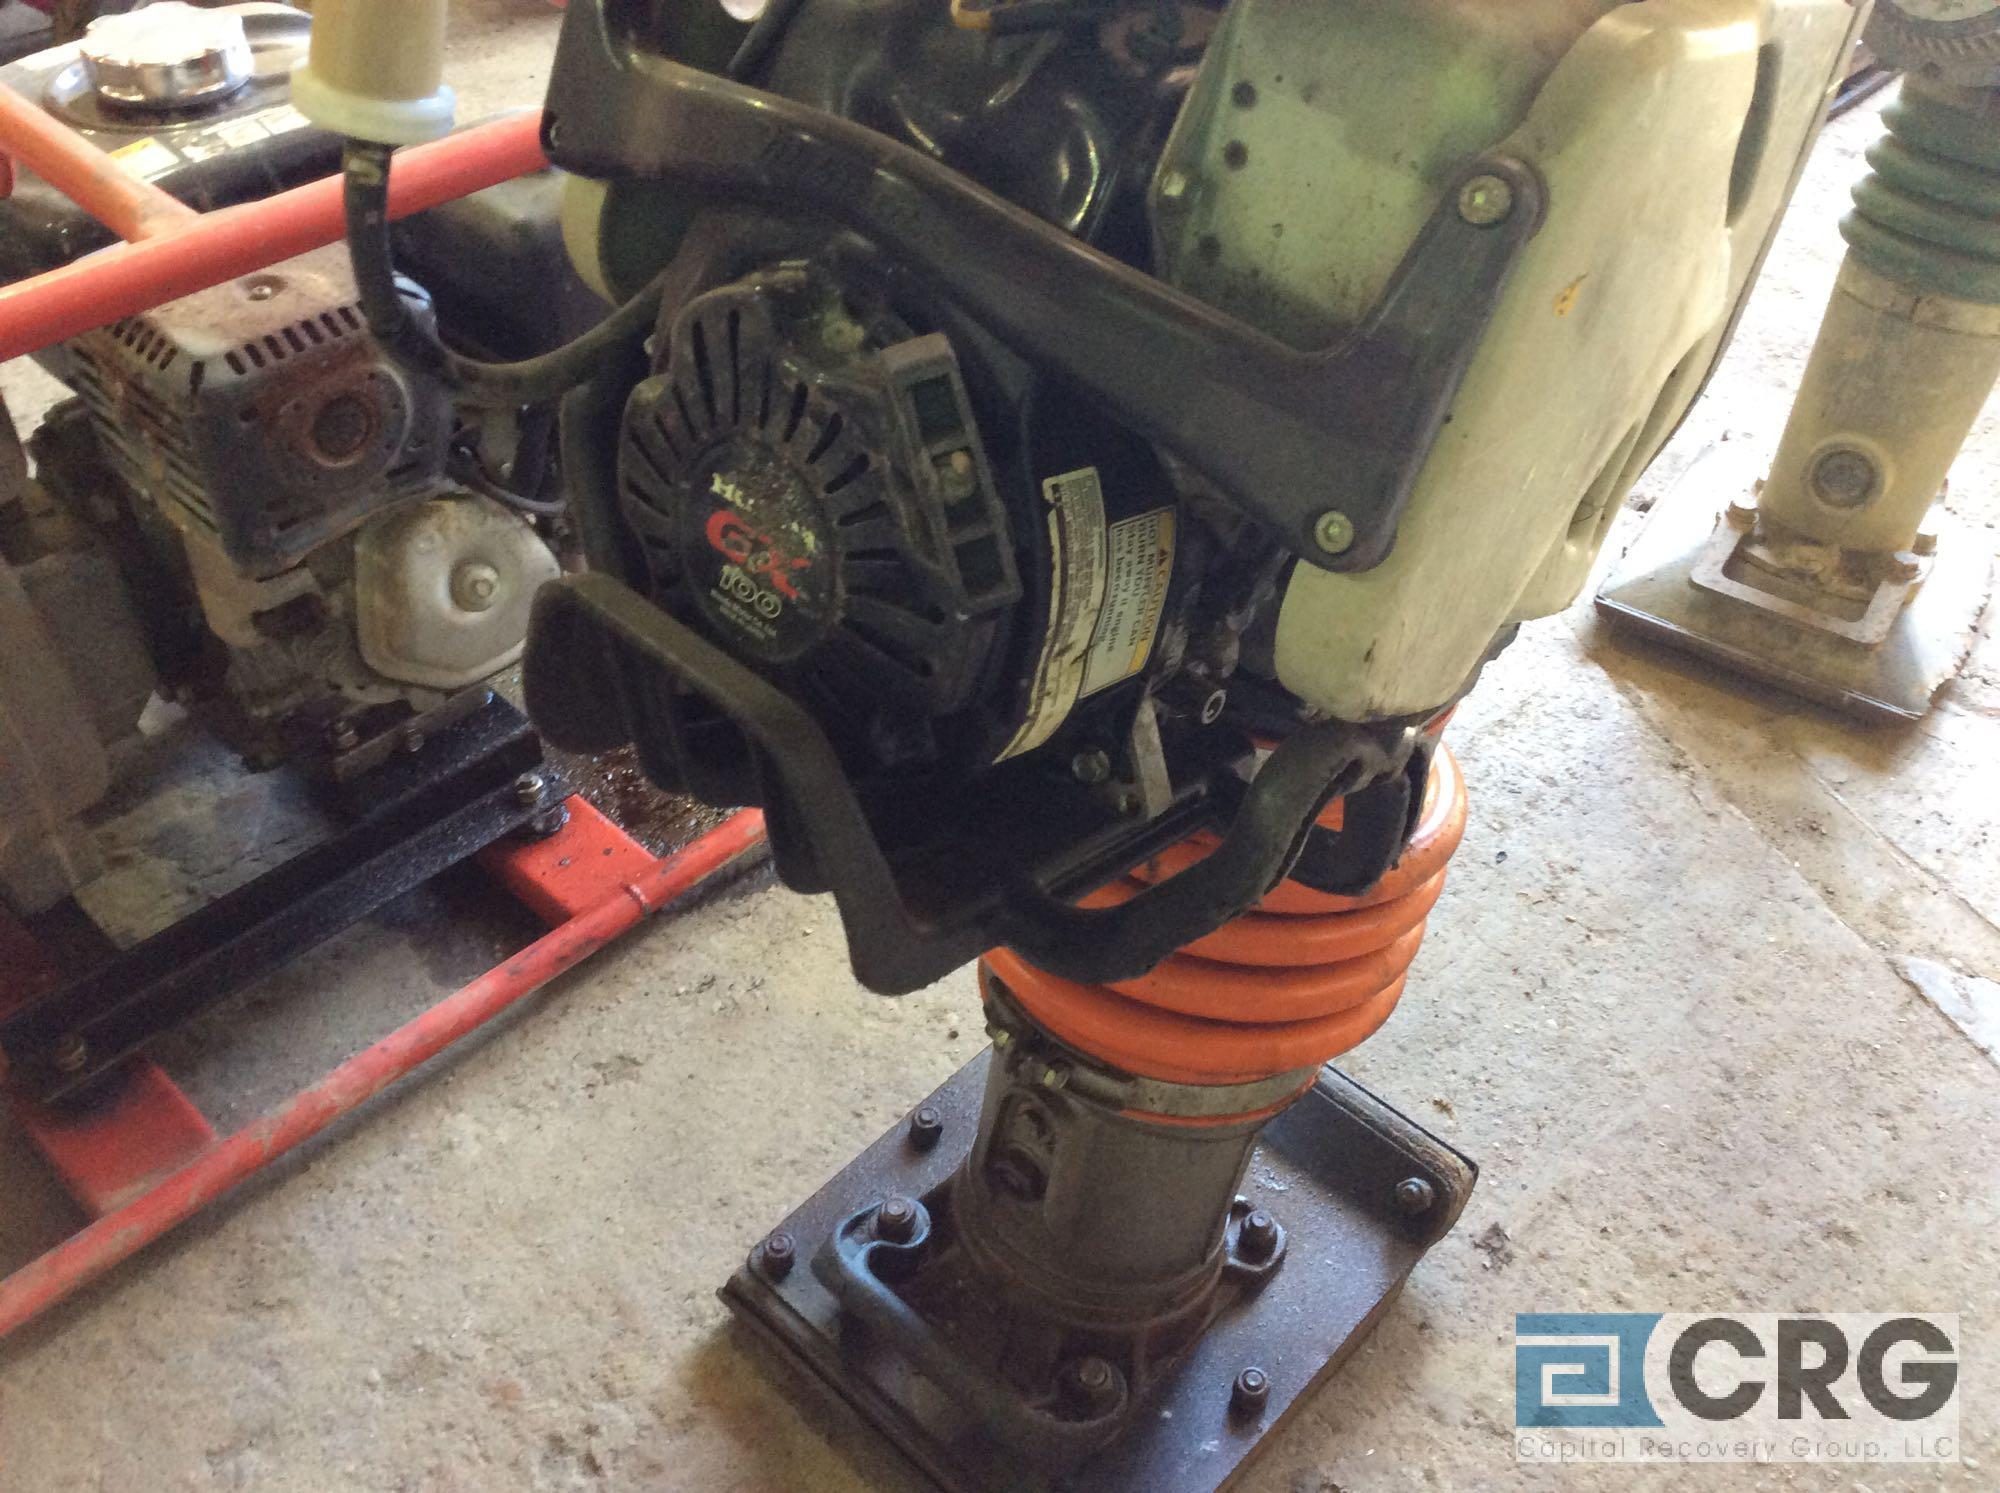 MultiQuip MTX60 jumping jack tamper with Honda GX100 motor, 418 hours - Image 4 of 4